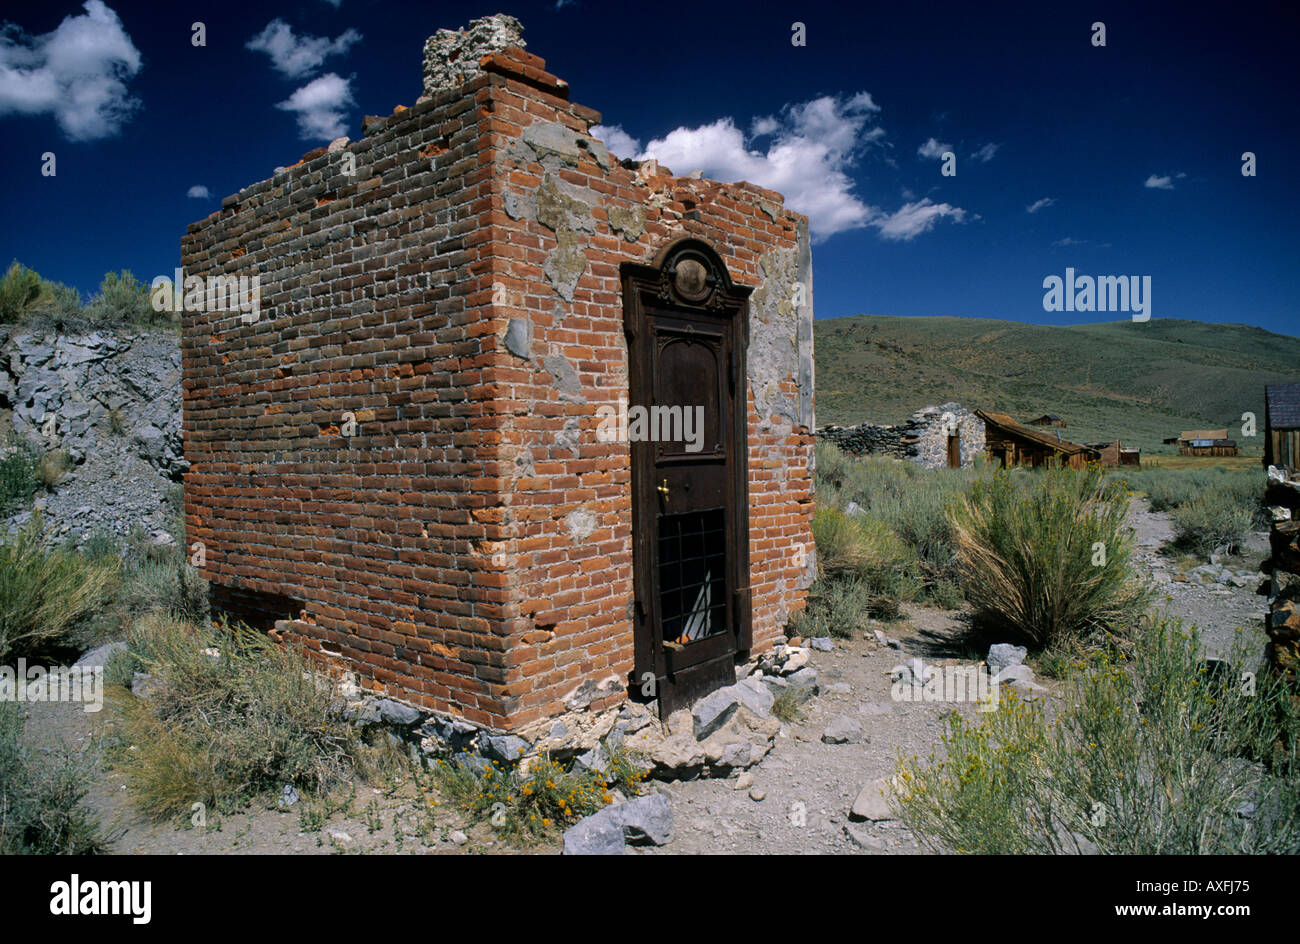 Remains of bank vault at Bodie California USA - Stock Image